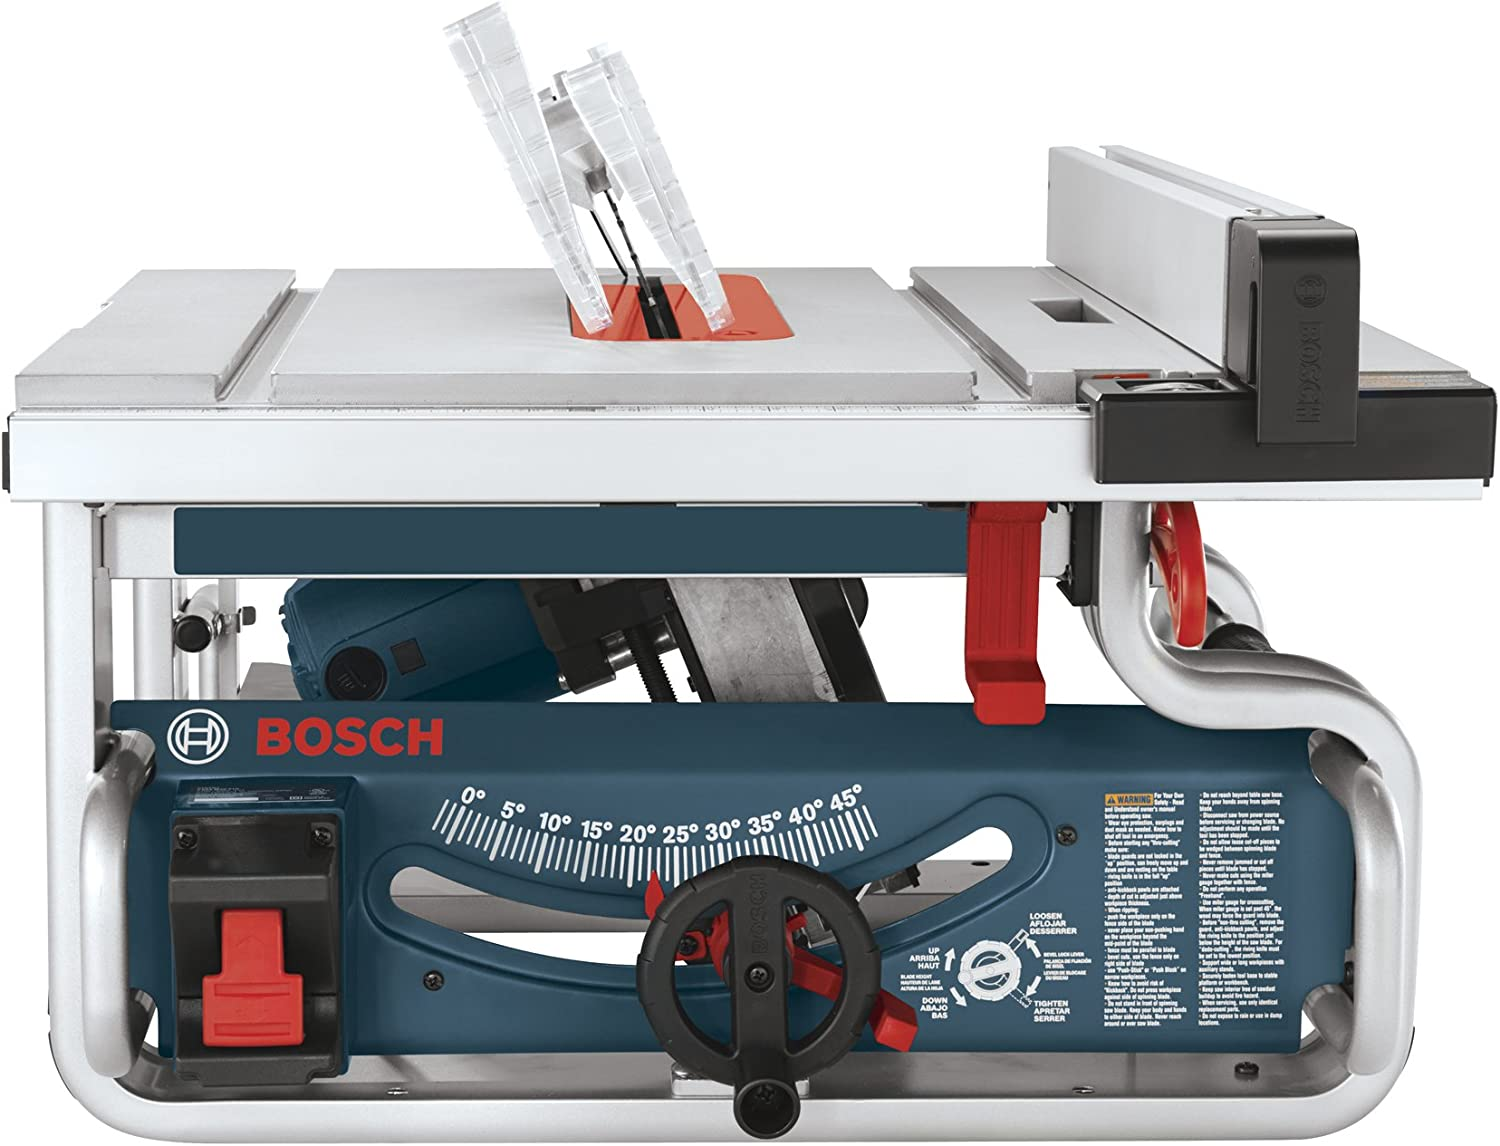 Bosch GTS1031 Table Saws product image 10